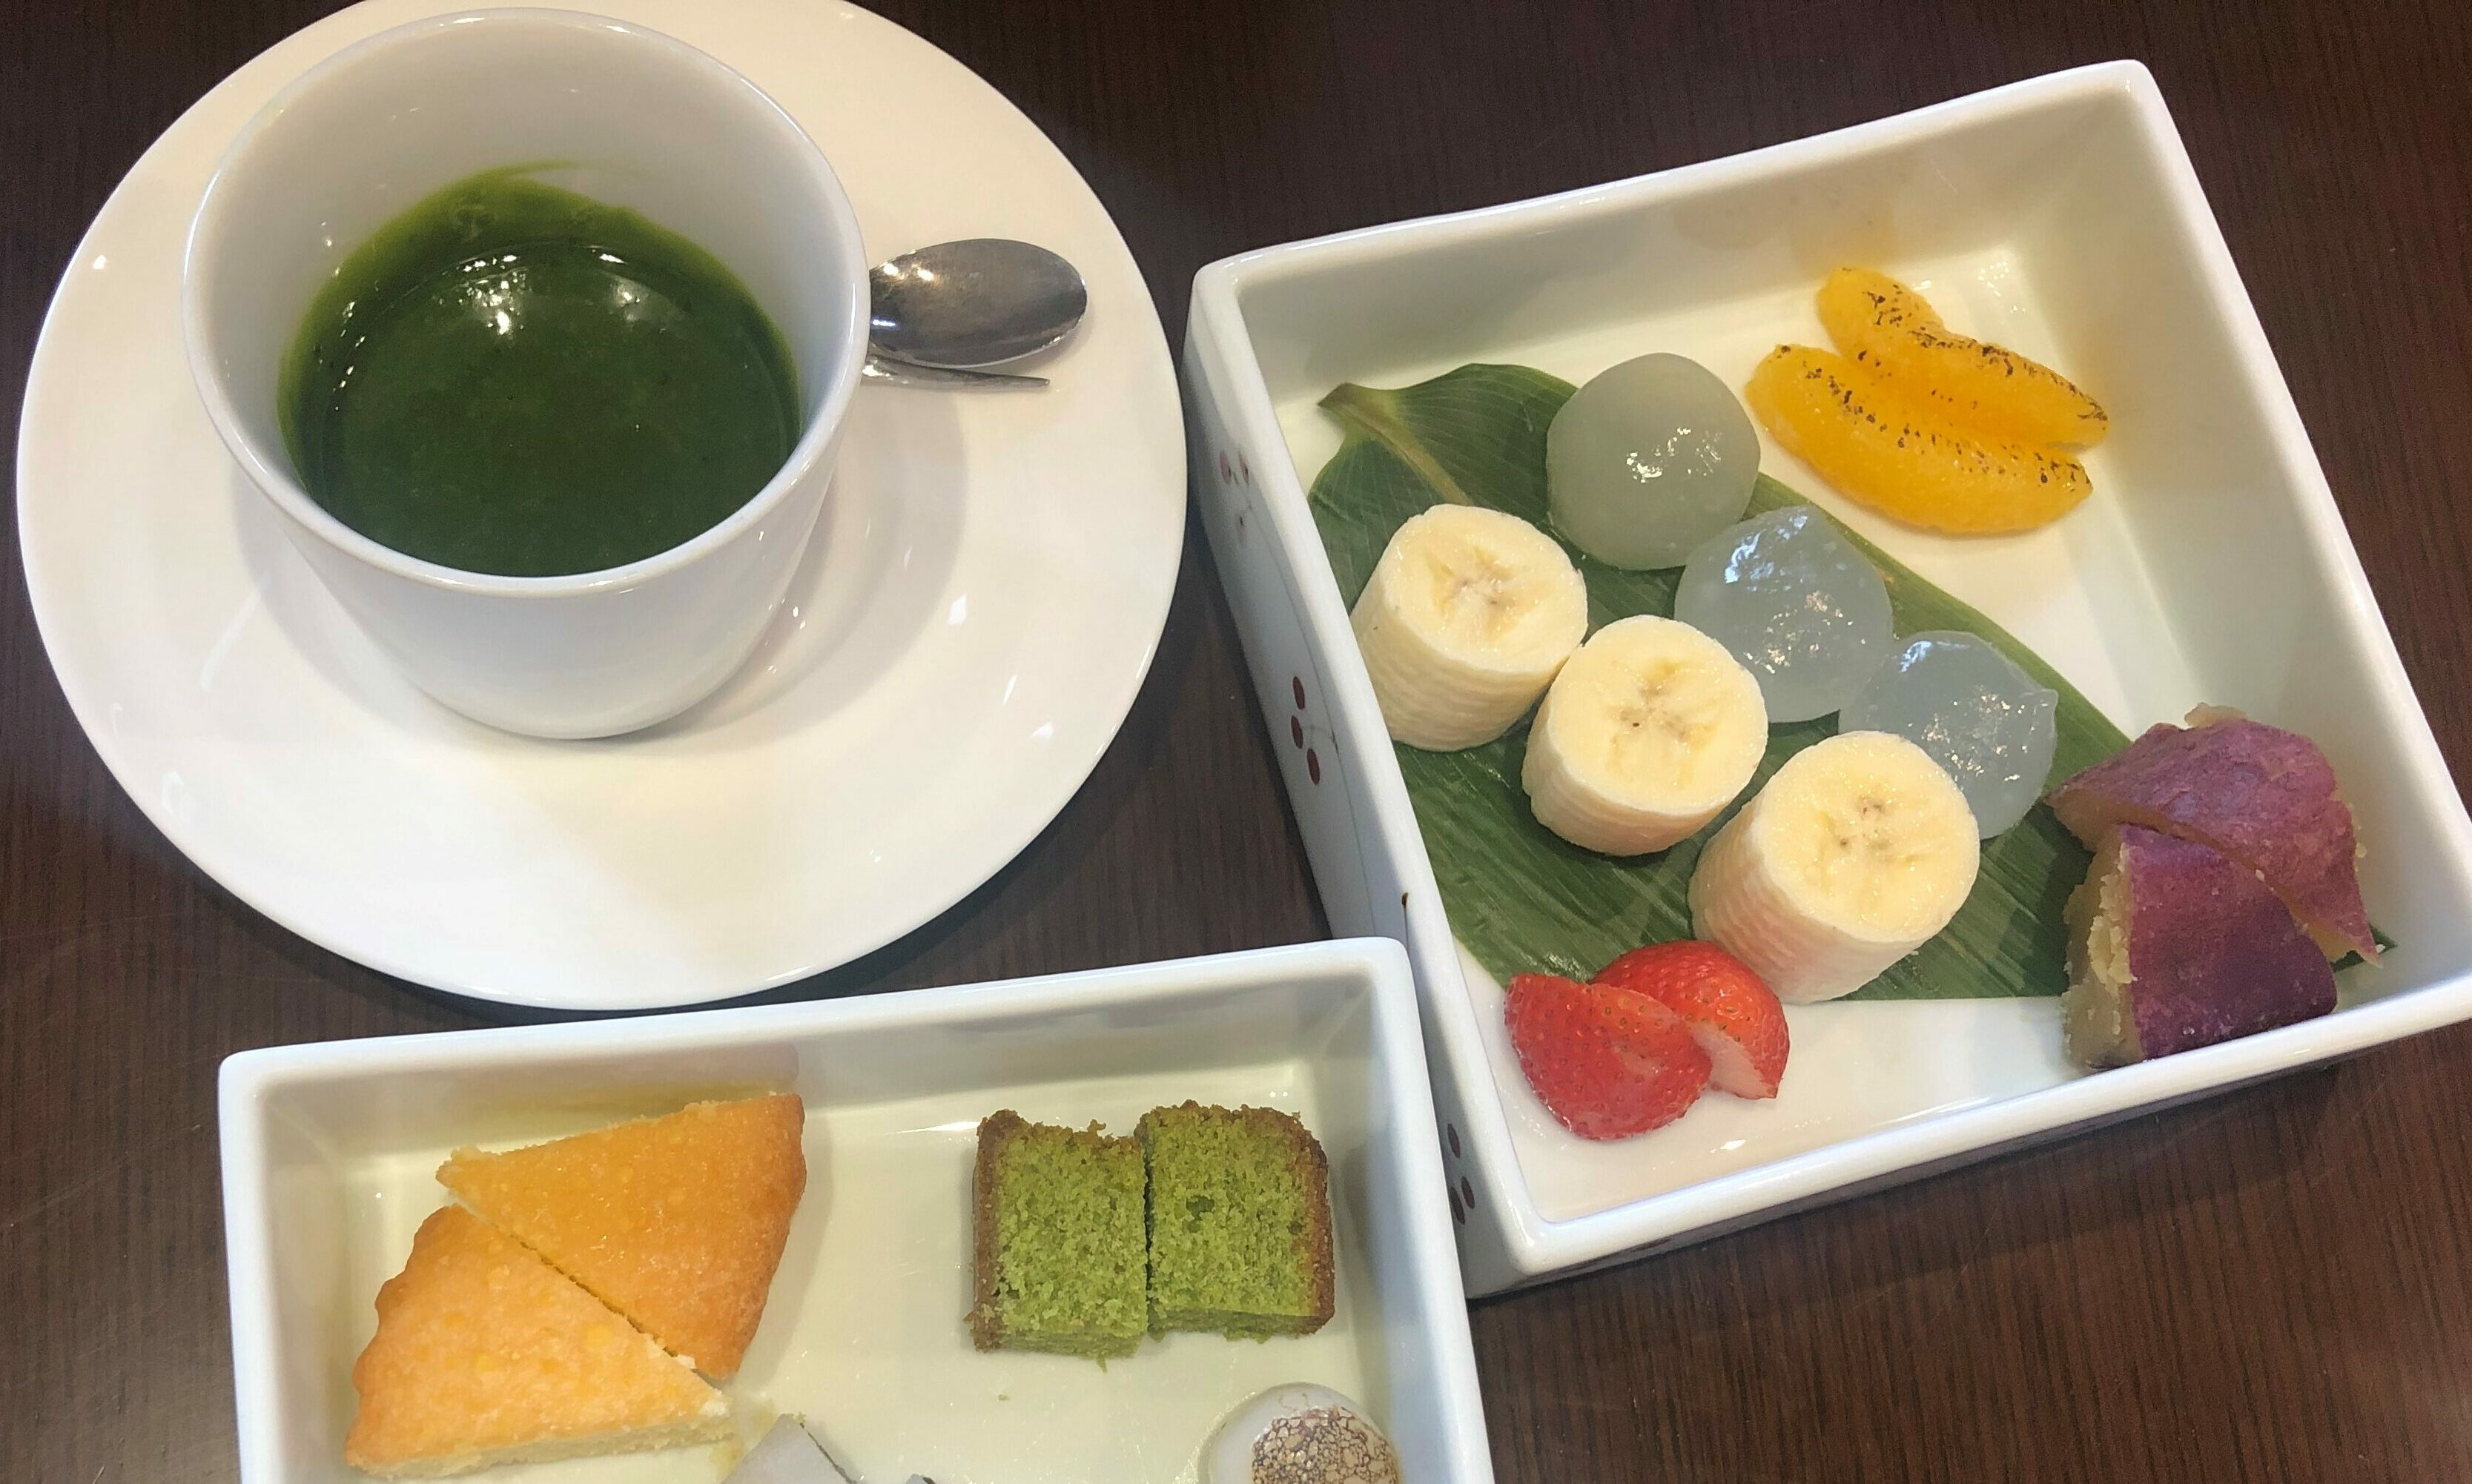 For matcha lovers!